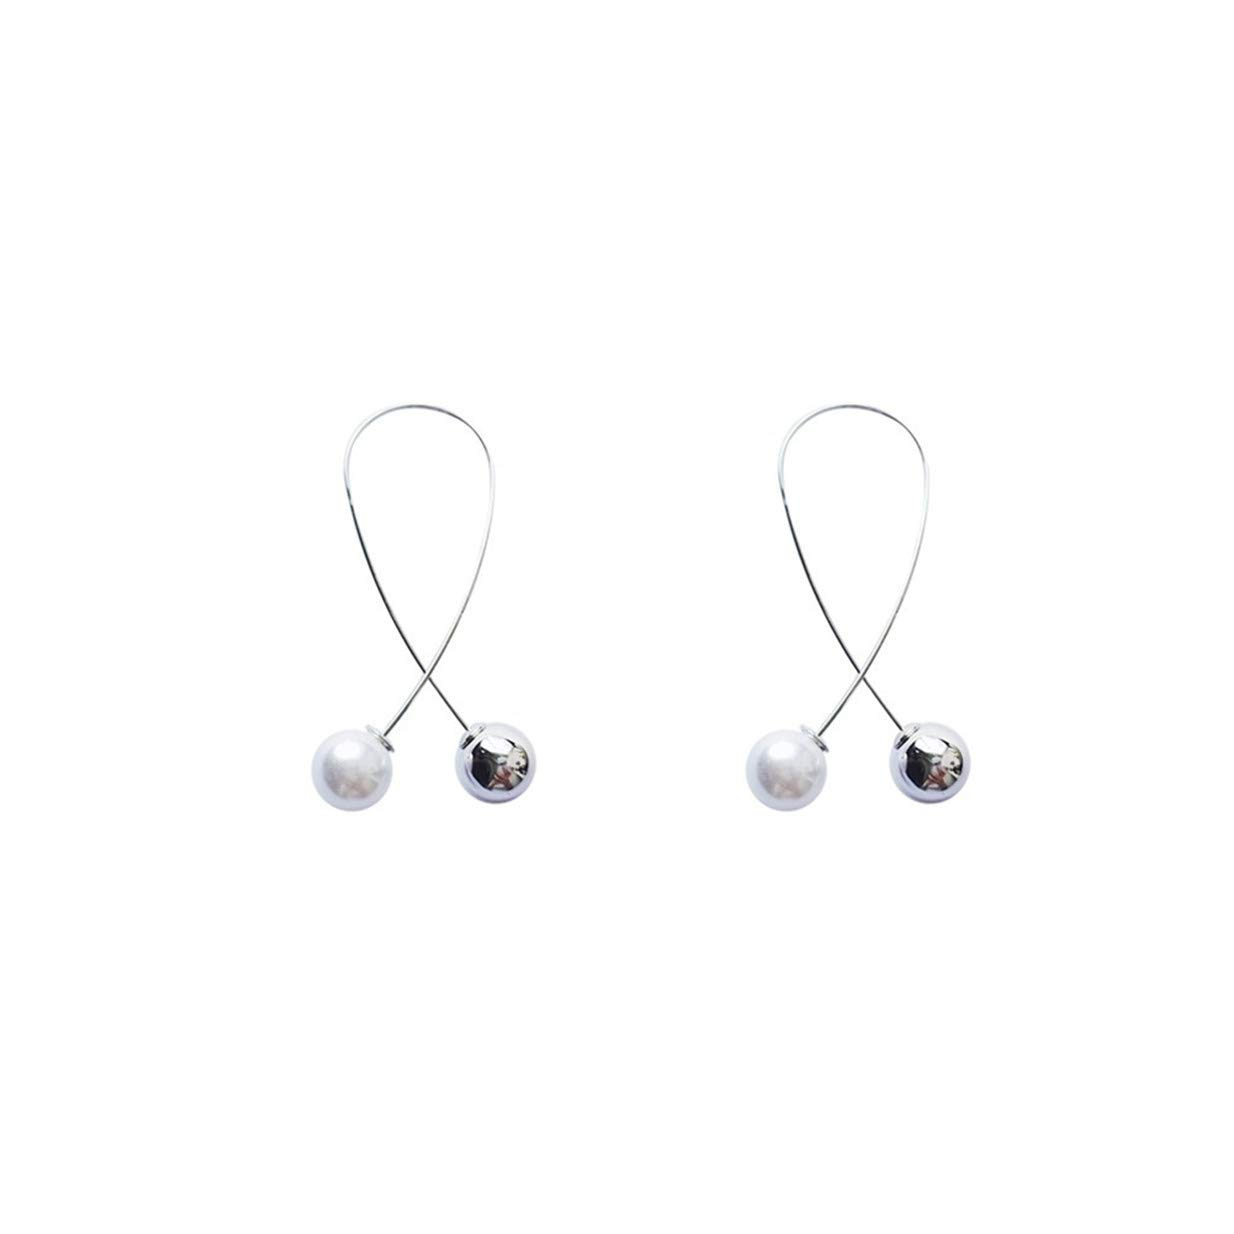 LALANG Temperament Imitation Pearl Pendant Earrings Simple Wild Clothing Accessories(Silver)